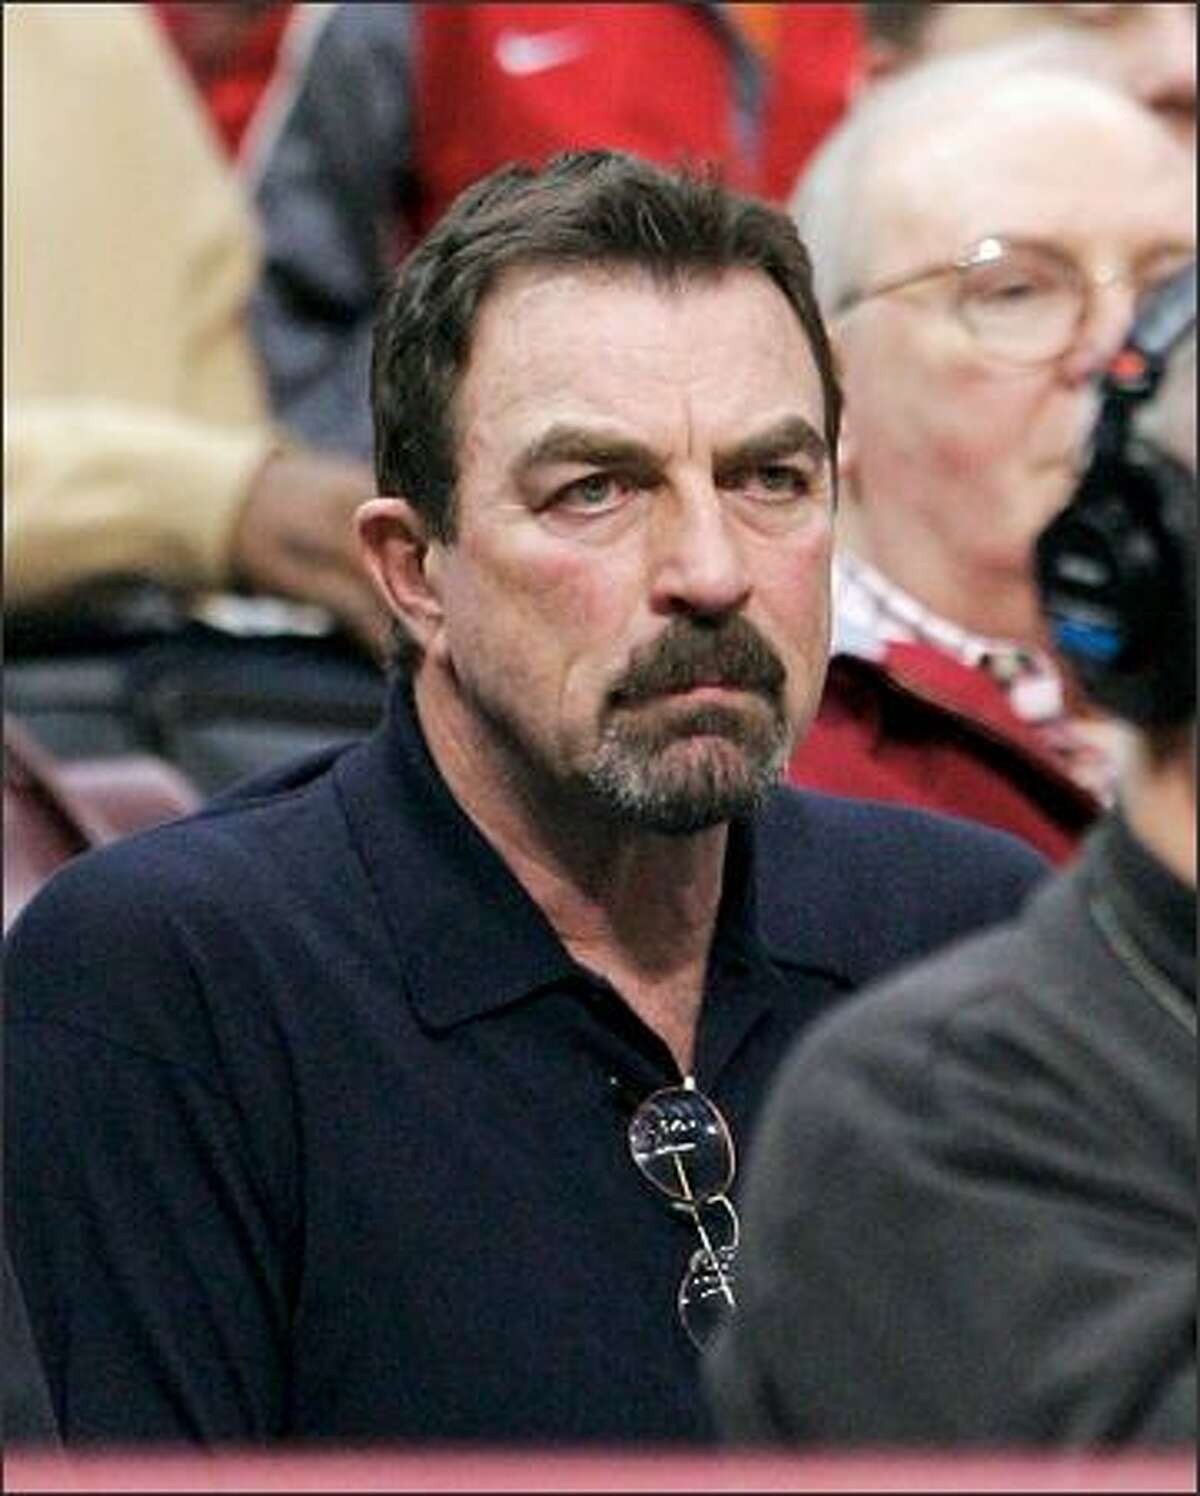 """The face of Tom Selleck registers his excitement during a recent college b-ball game in L.A. The ex-""""Magnum P.I."""" star sure knows how to have a fun time."""